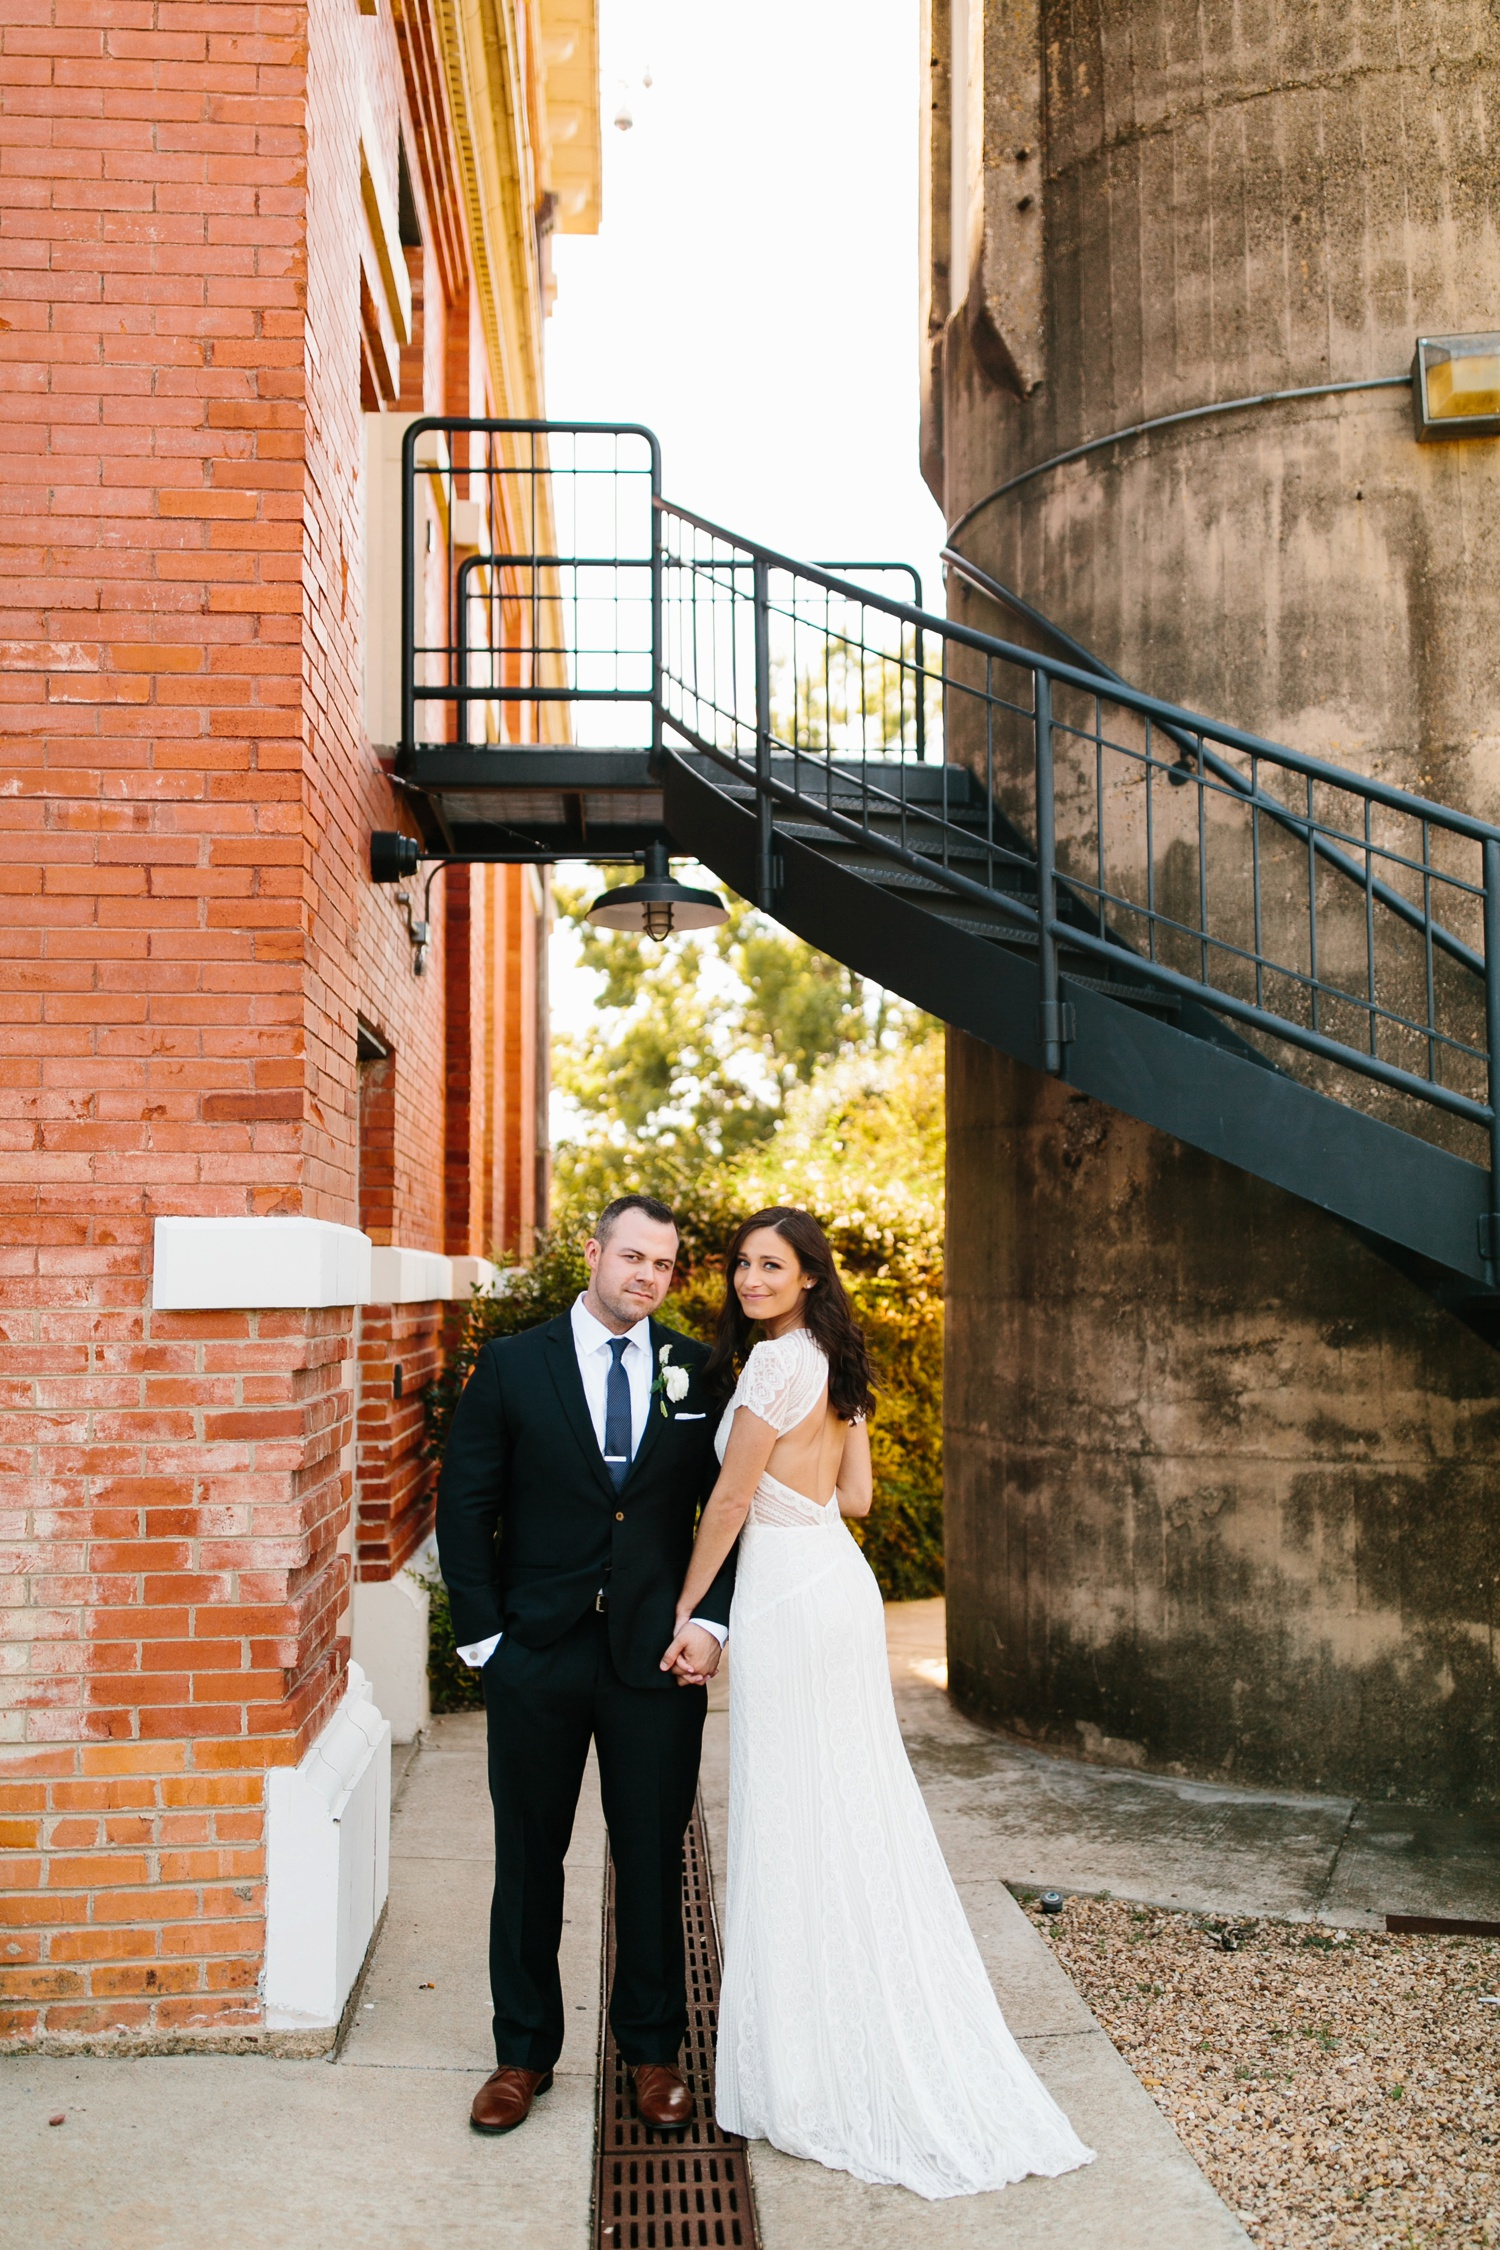 Kadee + Tyler | a raw, emotional wedding at the Filter Building on White Rock Lake in Dallas, TX by North Texas Wedding Photographer, Rachel Meagan Photography 087